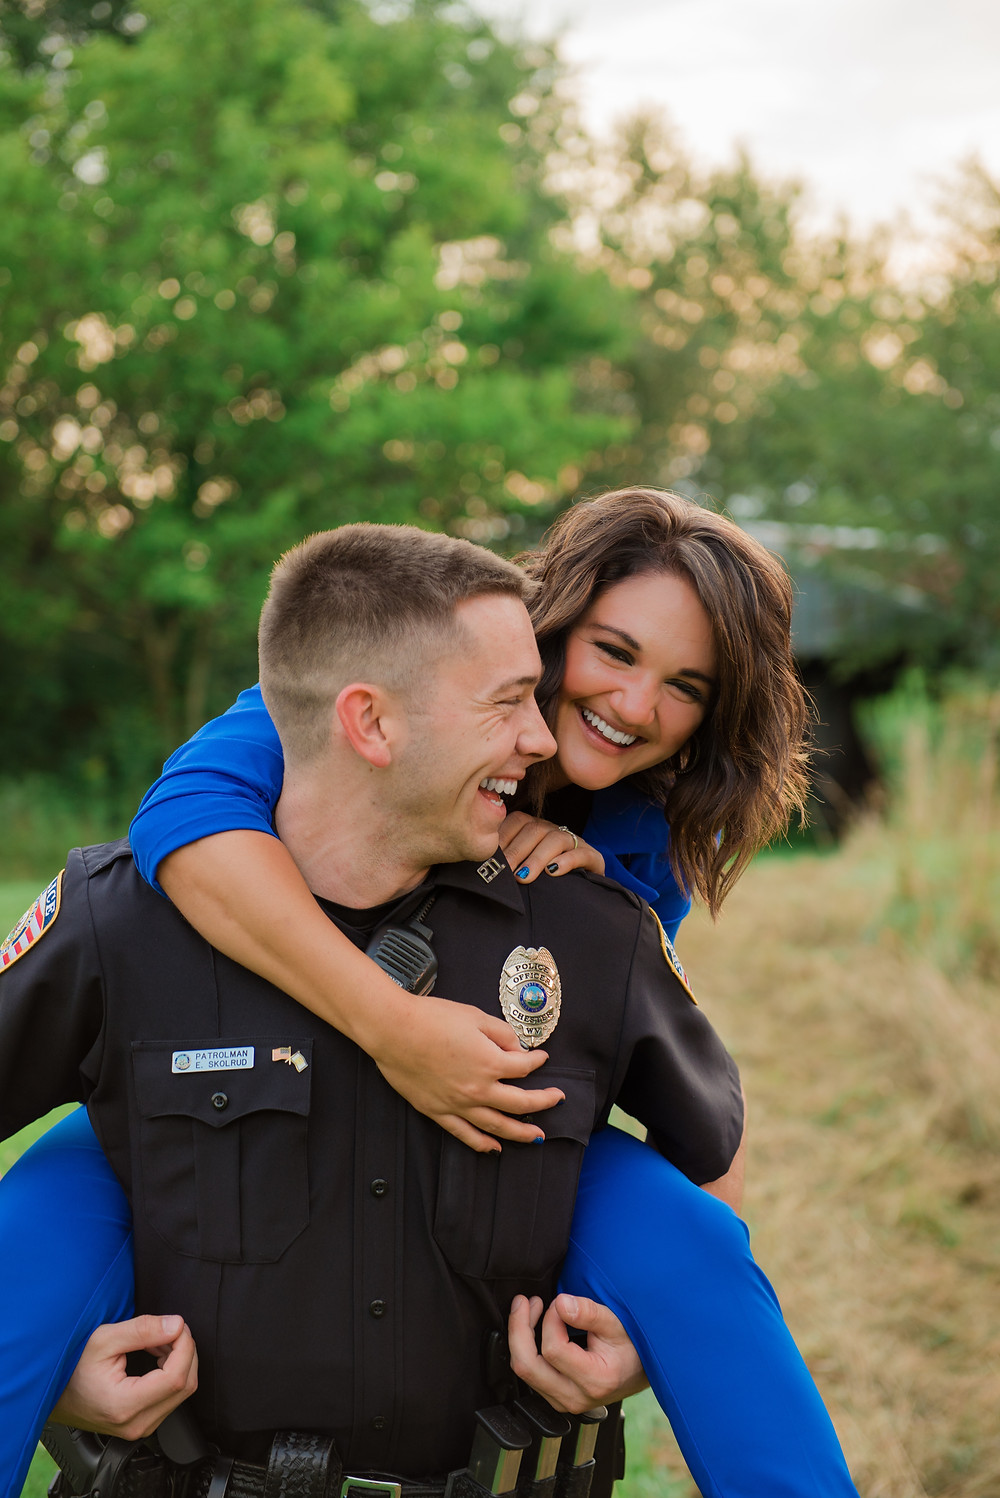 TA police officer holding his fiance on his back and laughing during their engagement session.